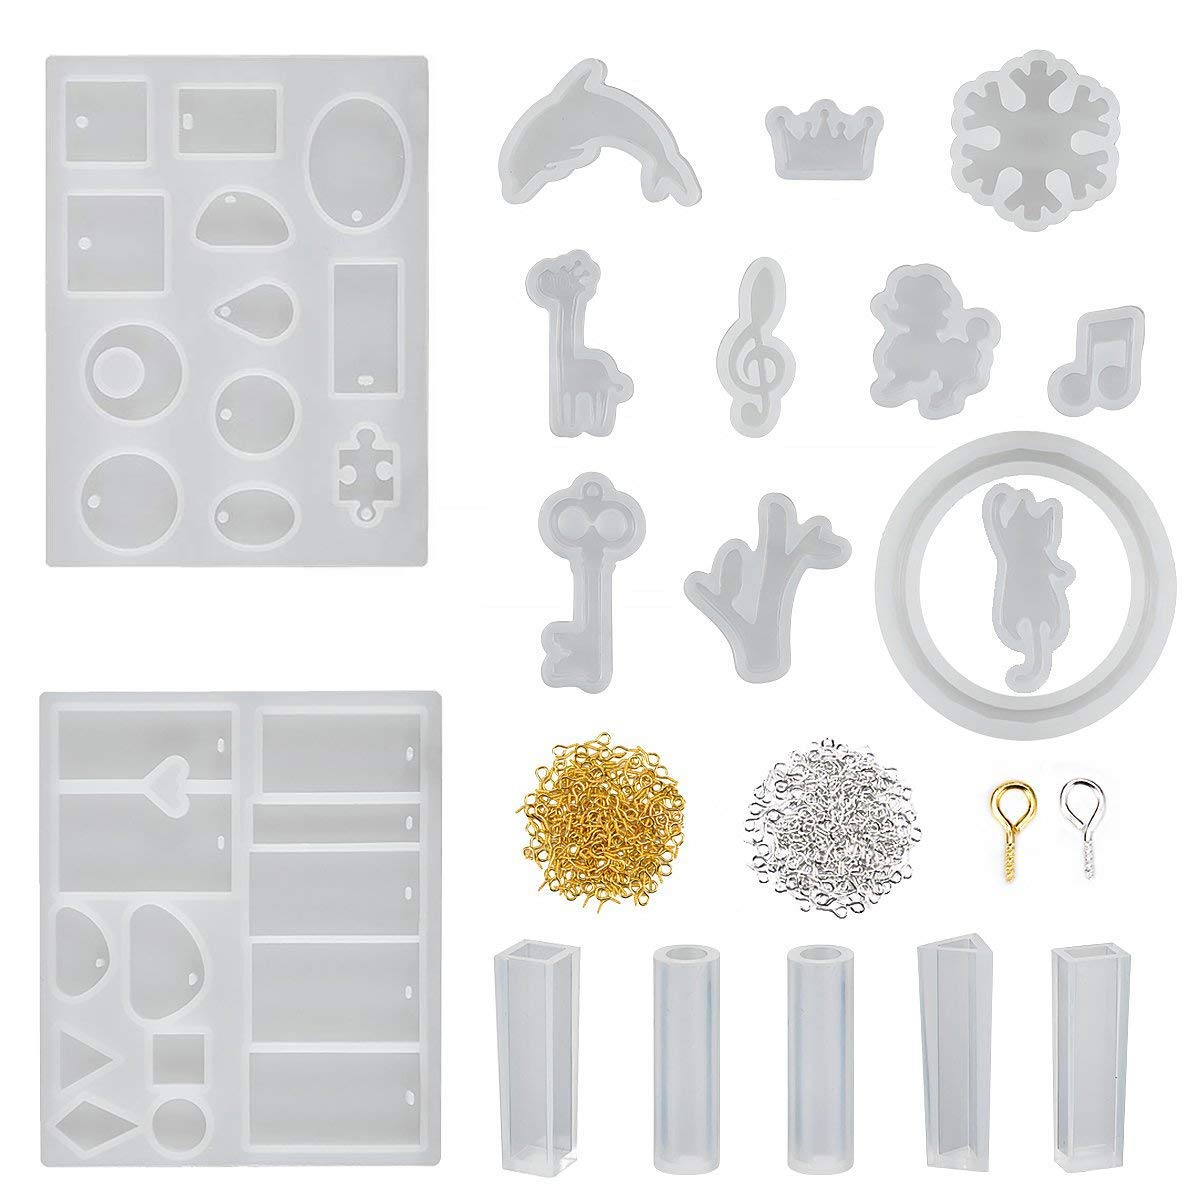 18 Pieces Jewelry Casting Molds Assorted Styles Mold Resin Casting Molds Silicone Resin Molds Set with 200 Pieces Screw Eye Pins for Pendant Jewelry Making DIY Homtable